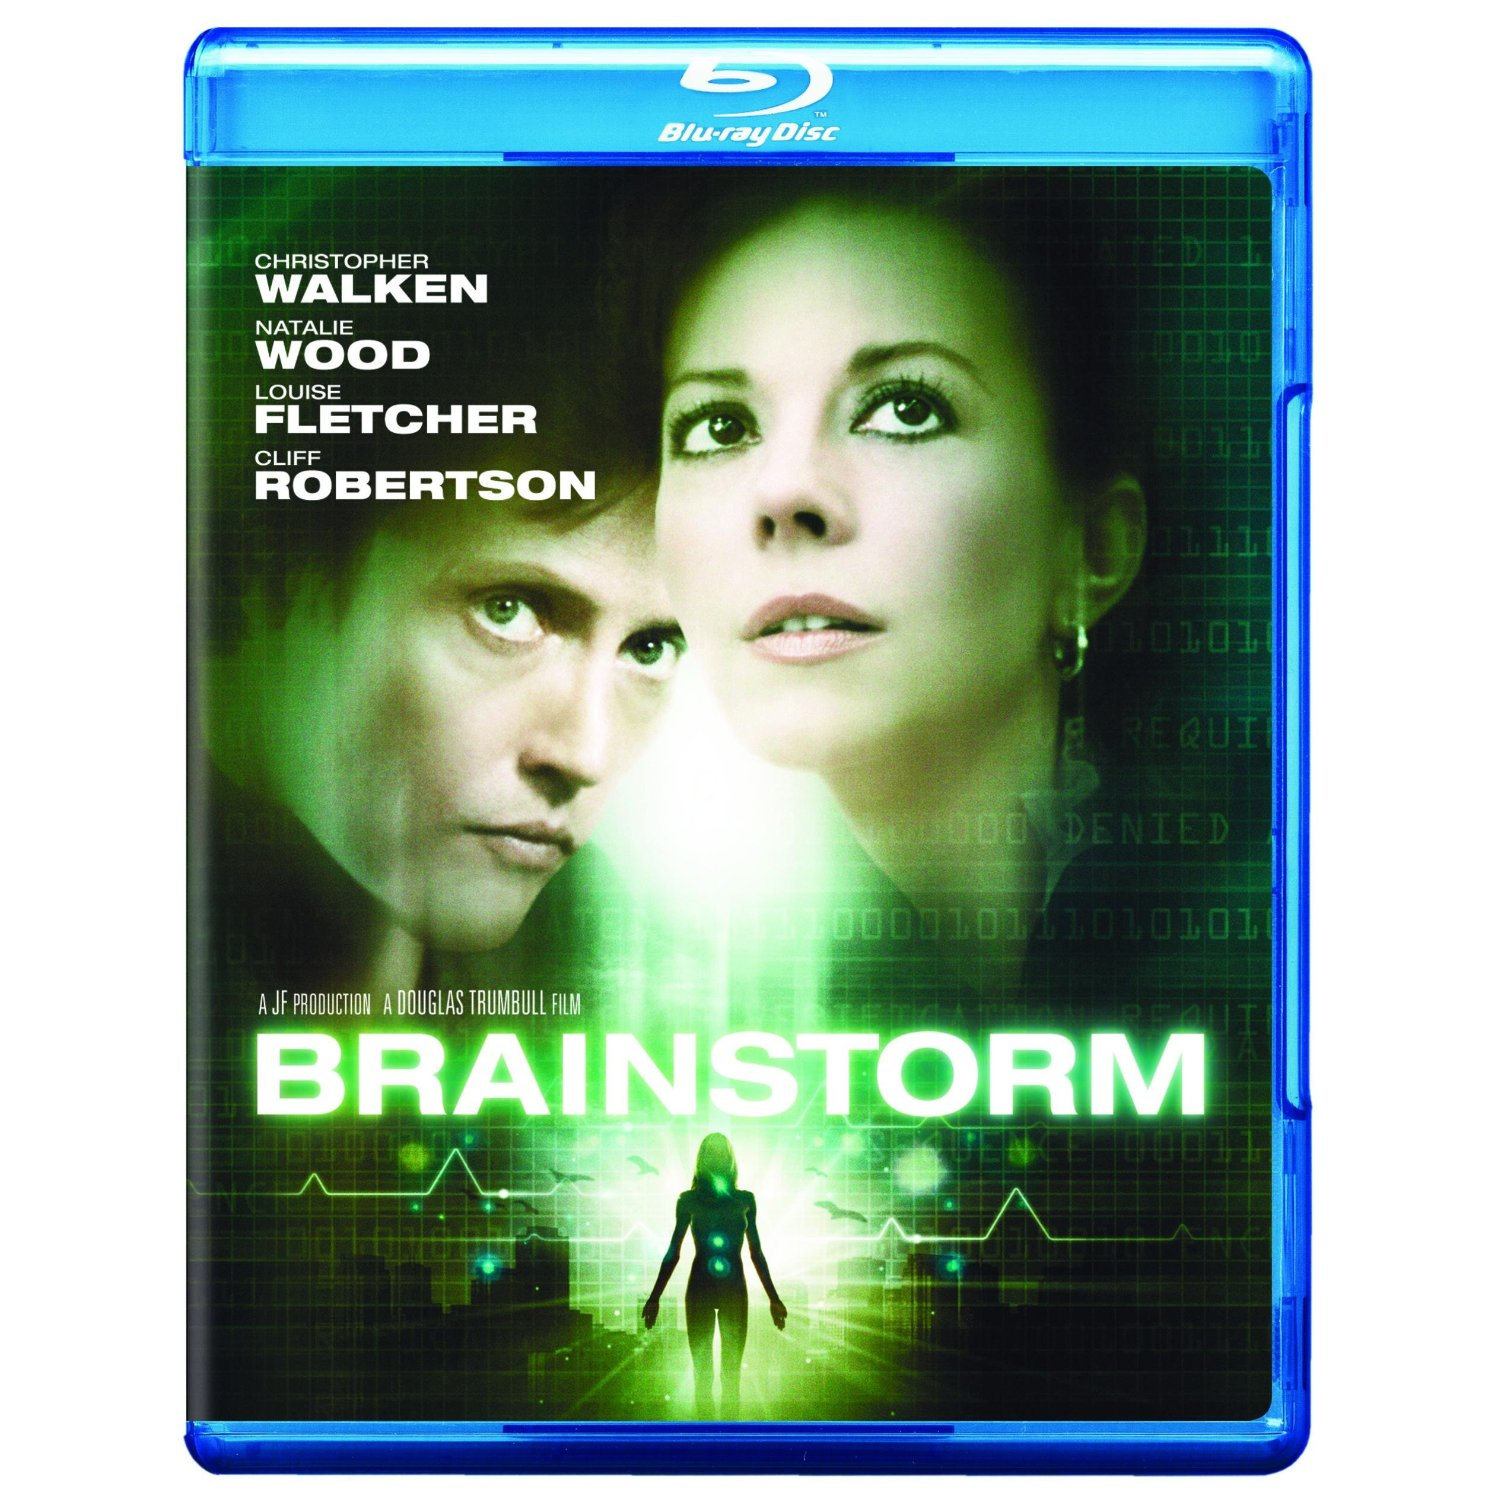 Brainstorm on Blu-ray